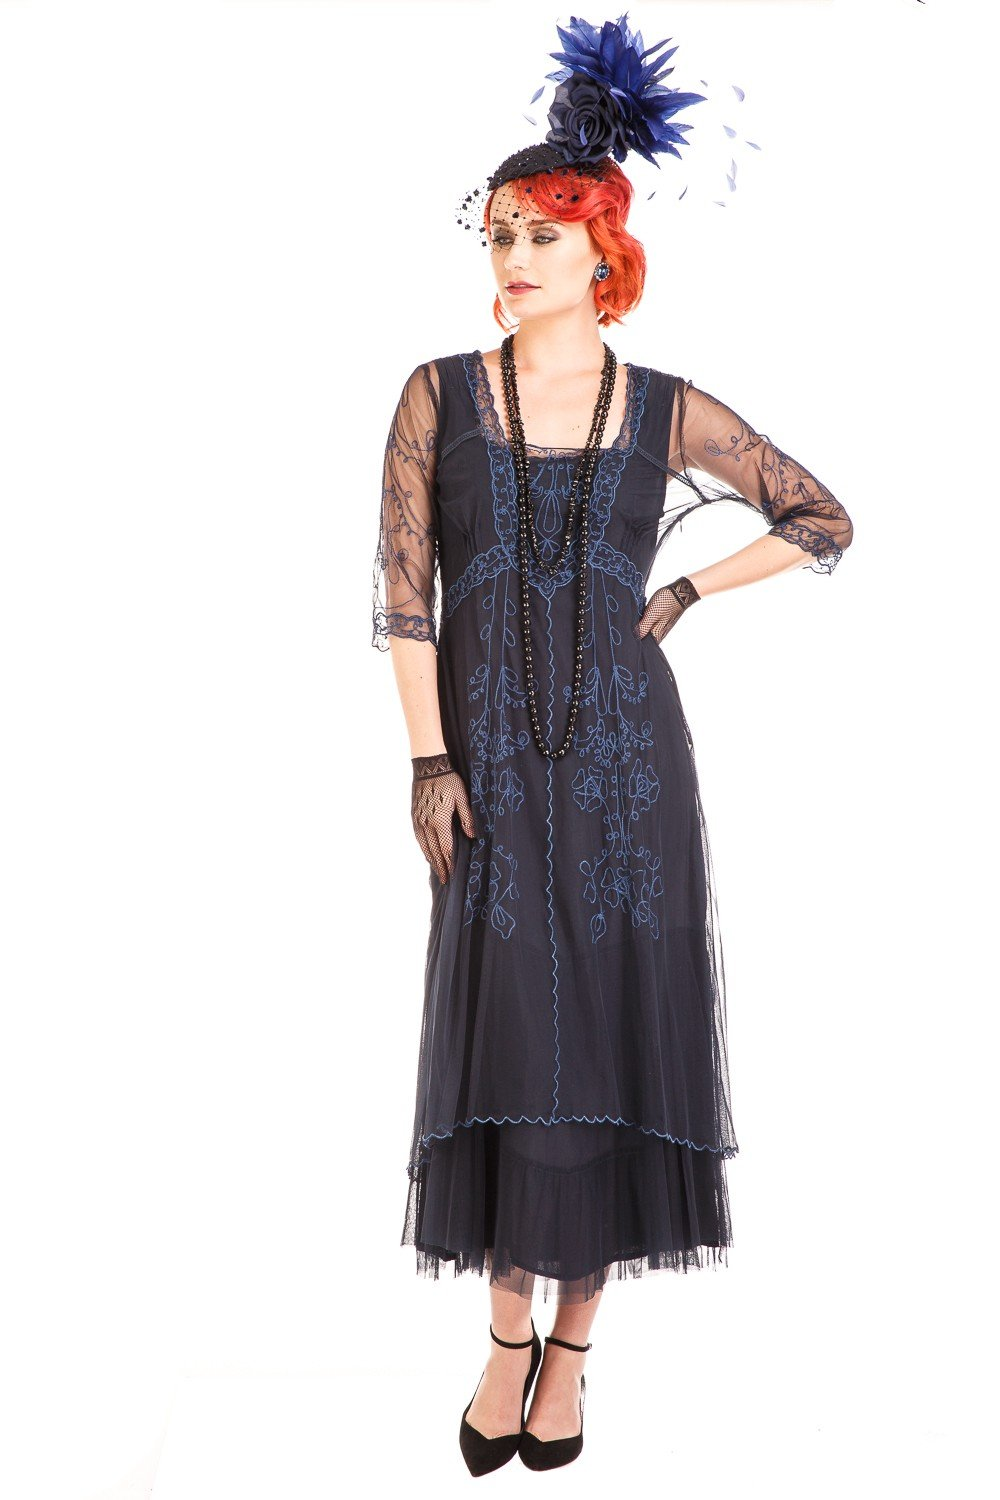 1900 -1910s Edwardian Fashion, Clothing & Costumes Mary Vintage Style Party Dress in Sapphire by Nataya $265.00 AT vintagedancer.com